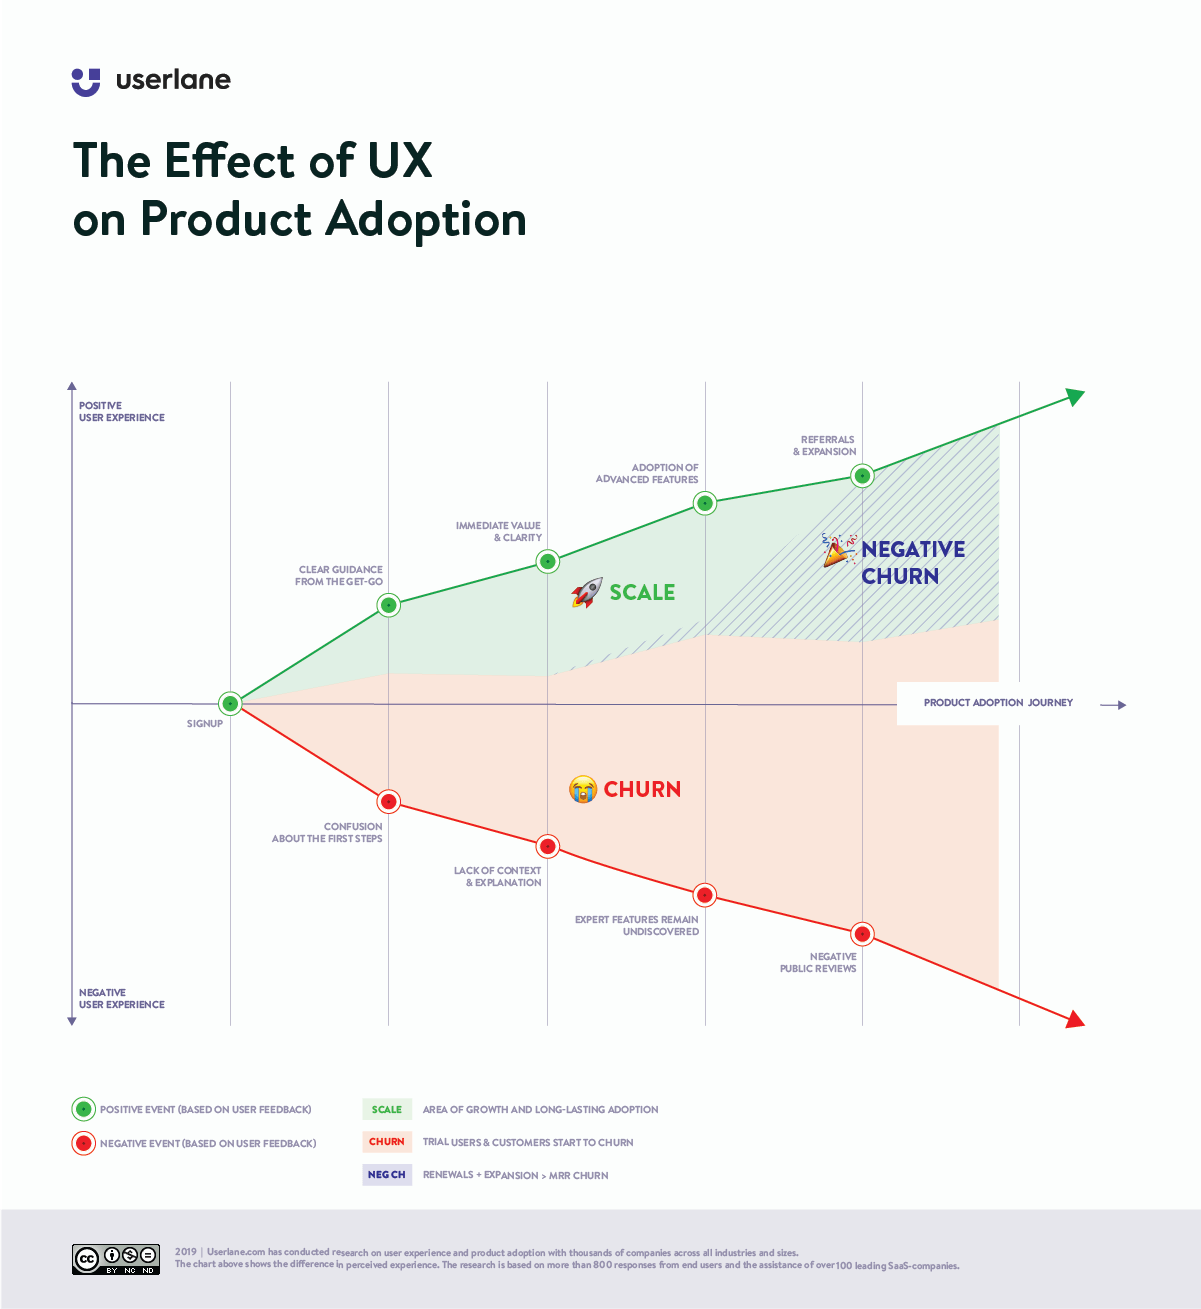 product adoption journey chart that depicts the effect of UX on retention and growth